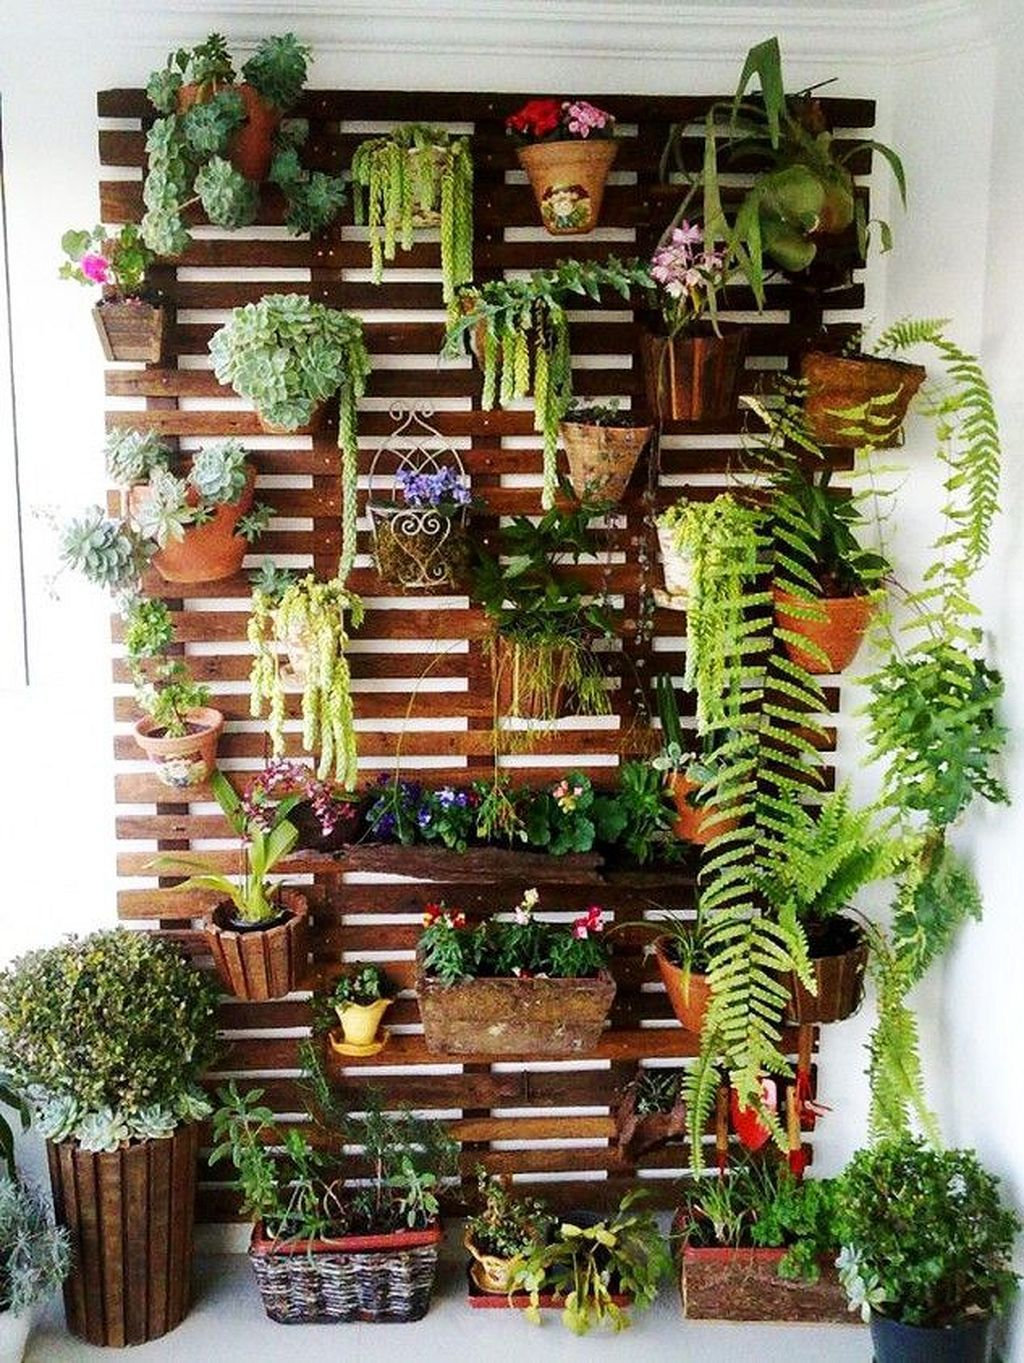 Cheap And Easy Small Space Garden On A Budget 10 | Pinterest | Small ...